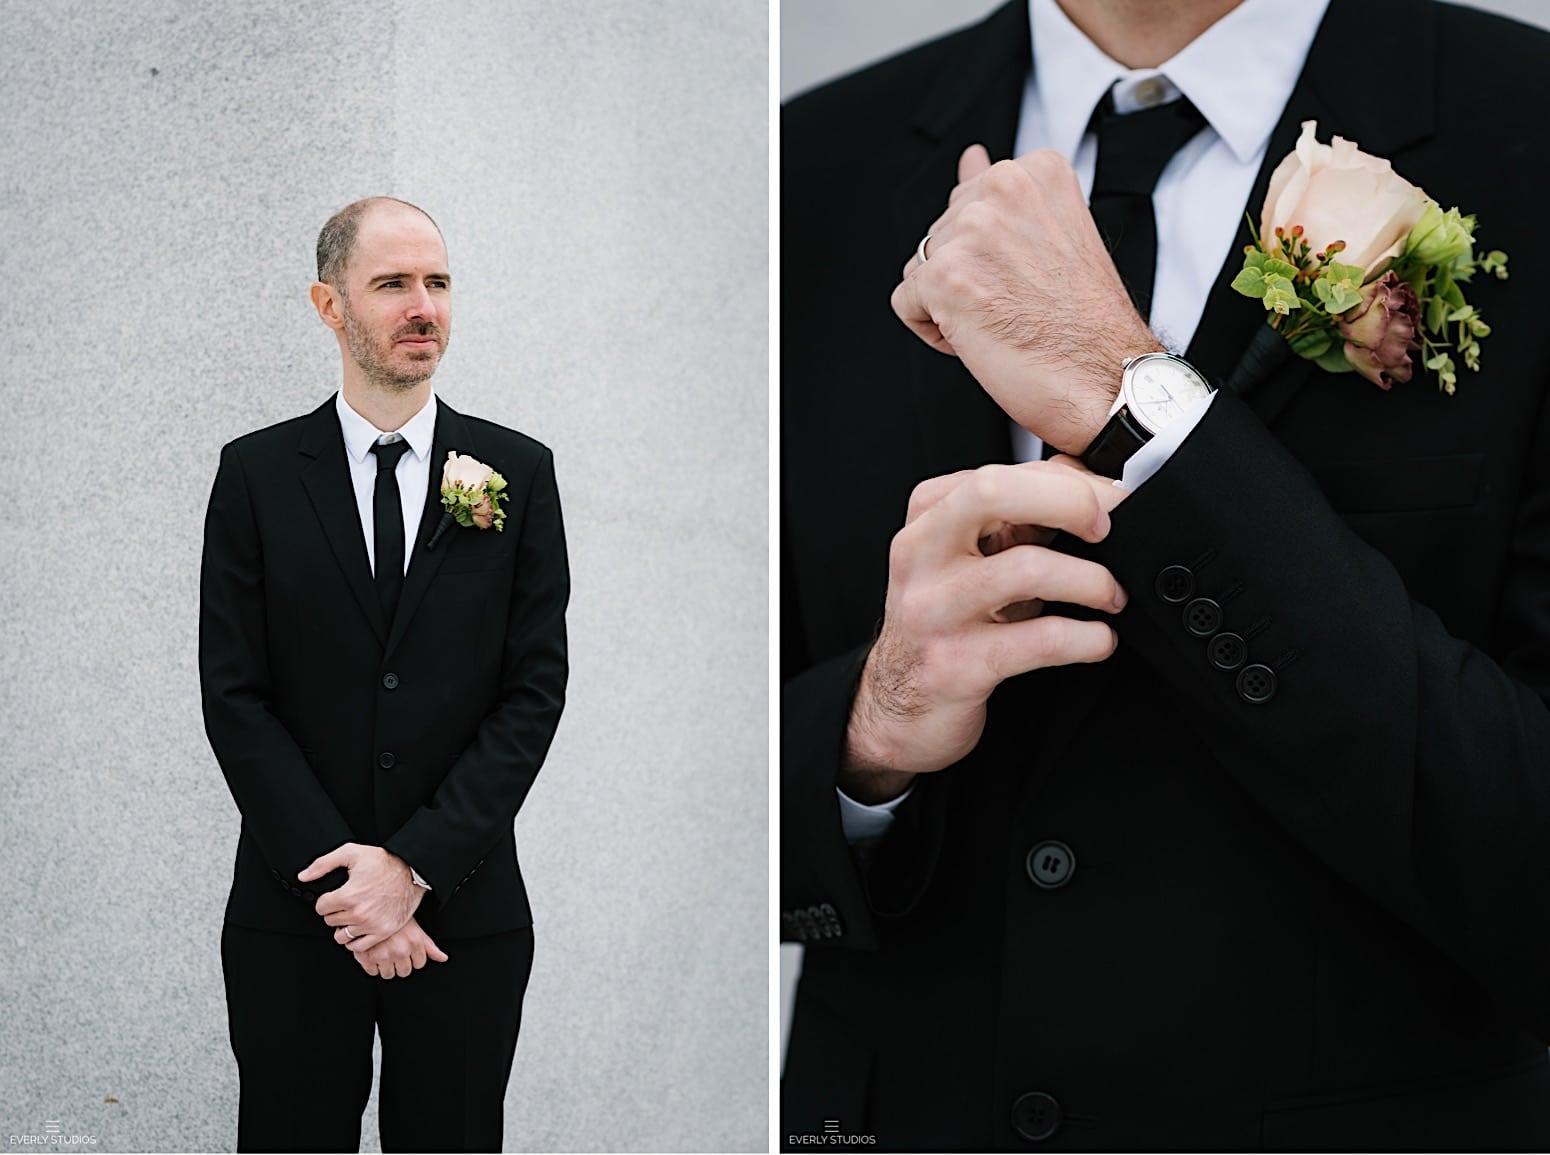 Four Freedoms Park wedding on Roosevelt Island NYC. Photos by NYC elopement photographer Everly Studios.